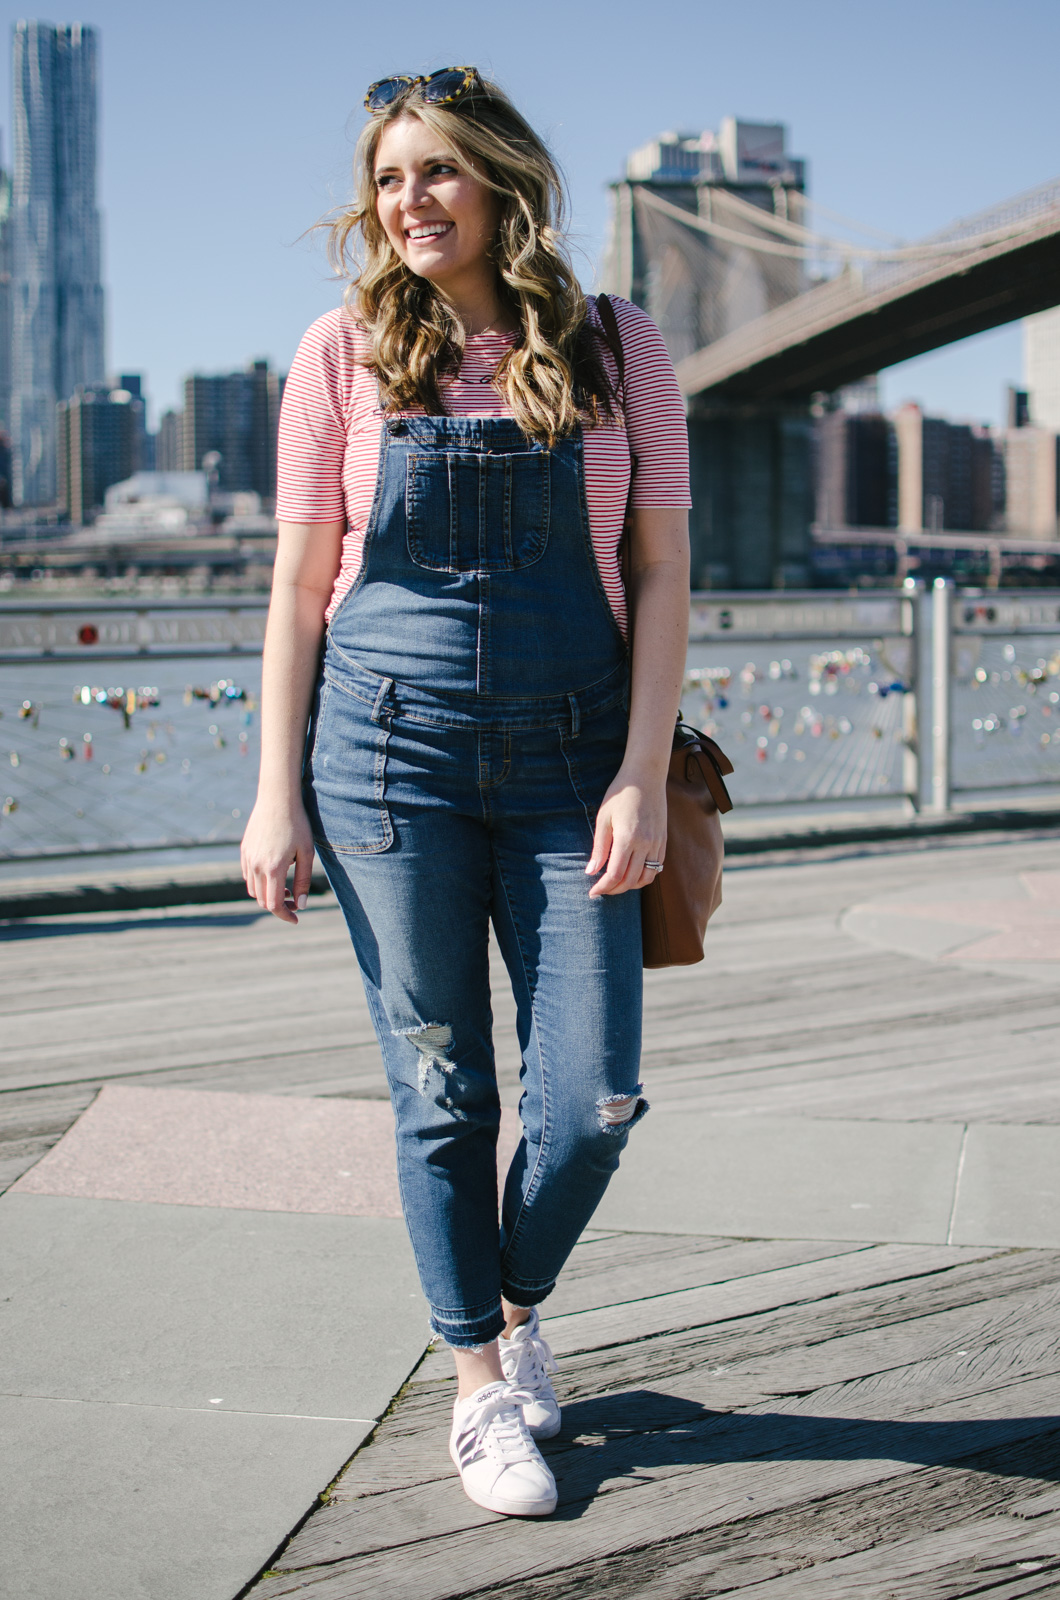 maternity overalls outfit - how wear overalls while pregnant | bylaurenm.com